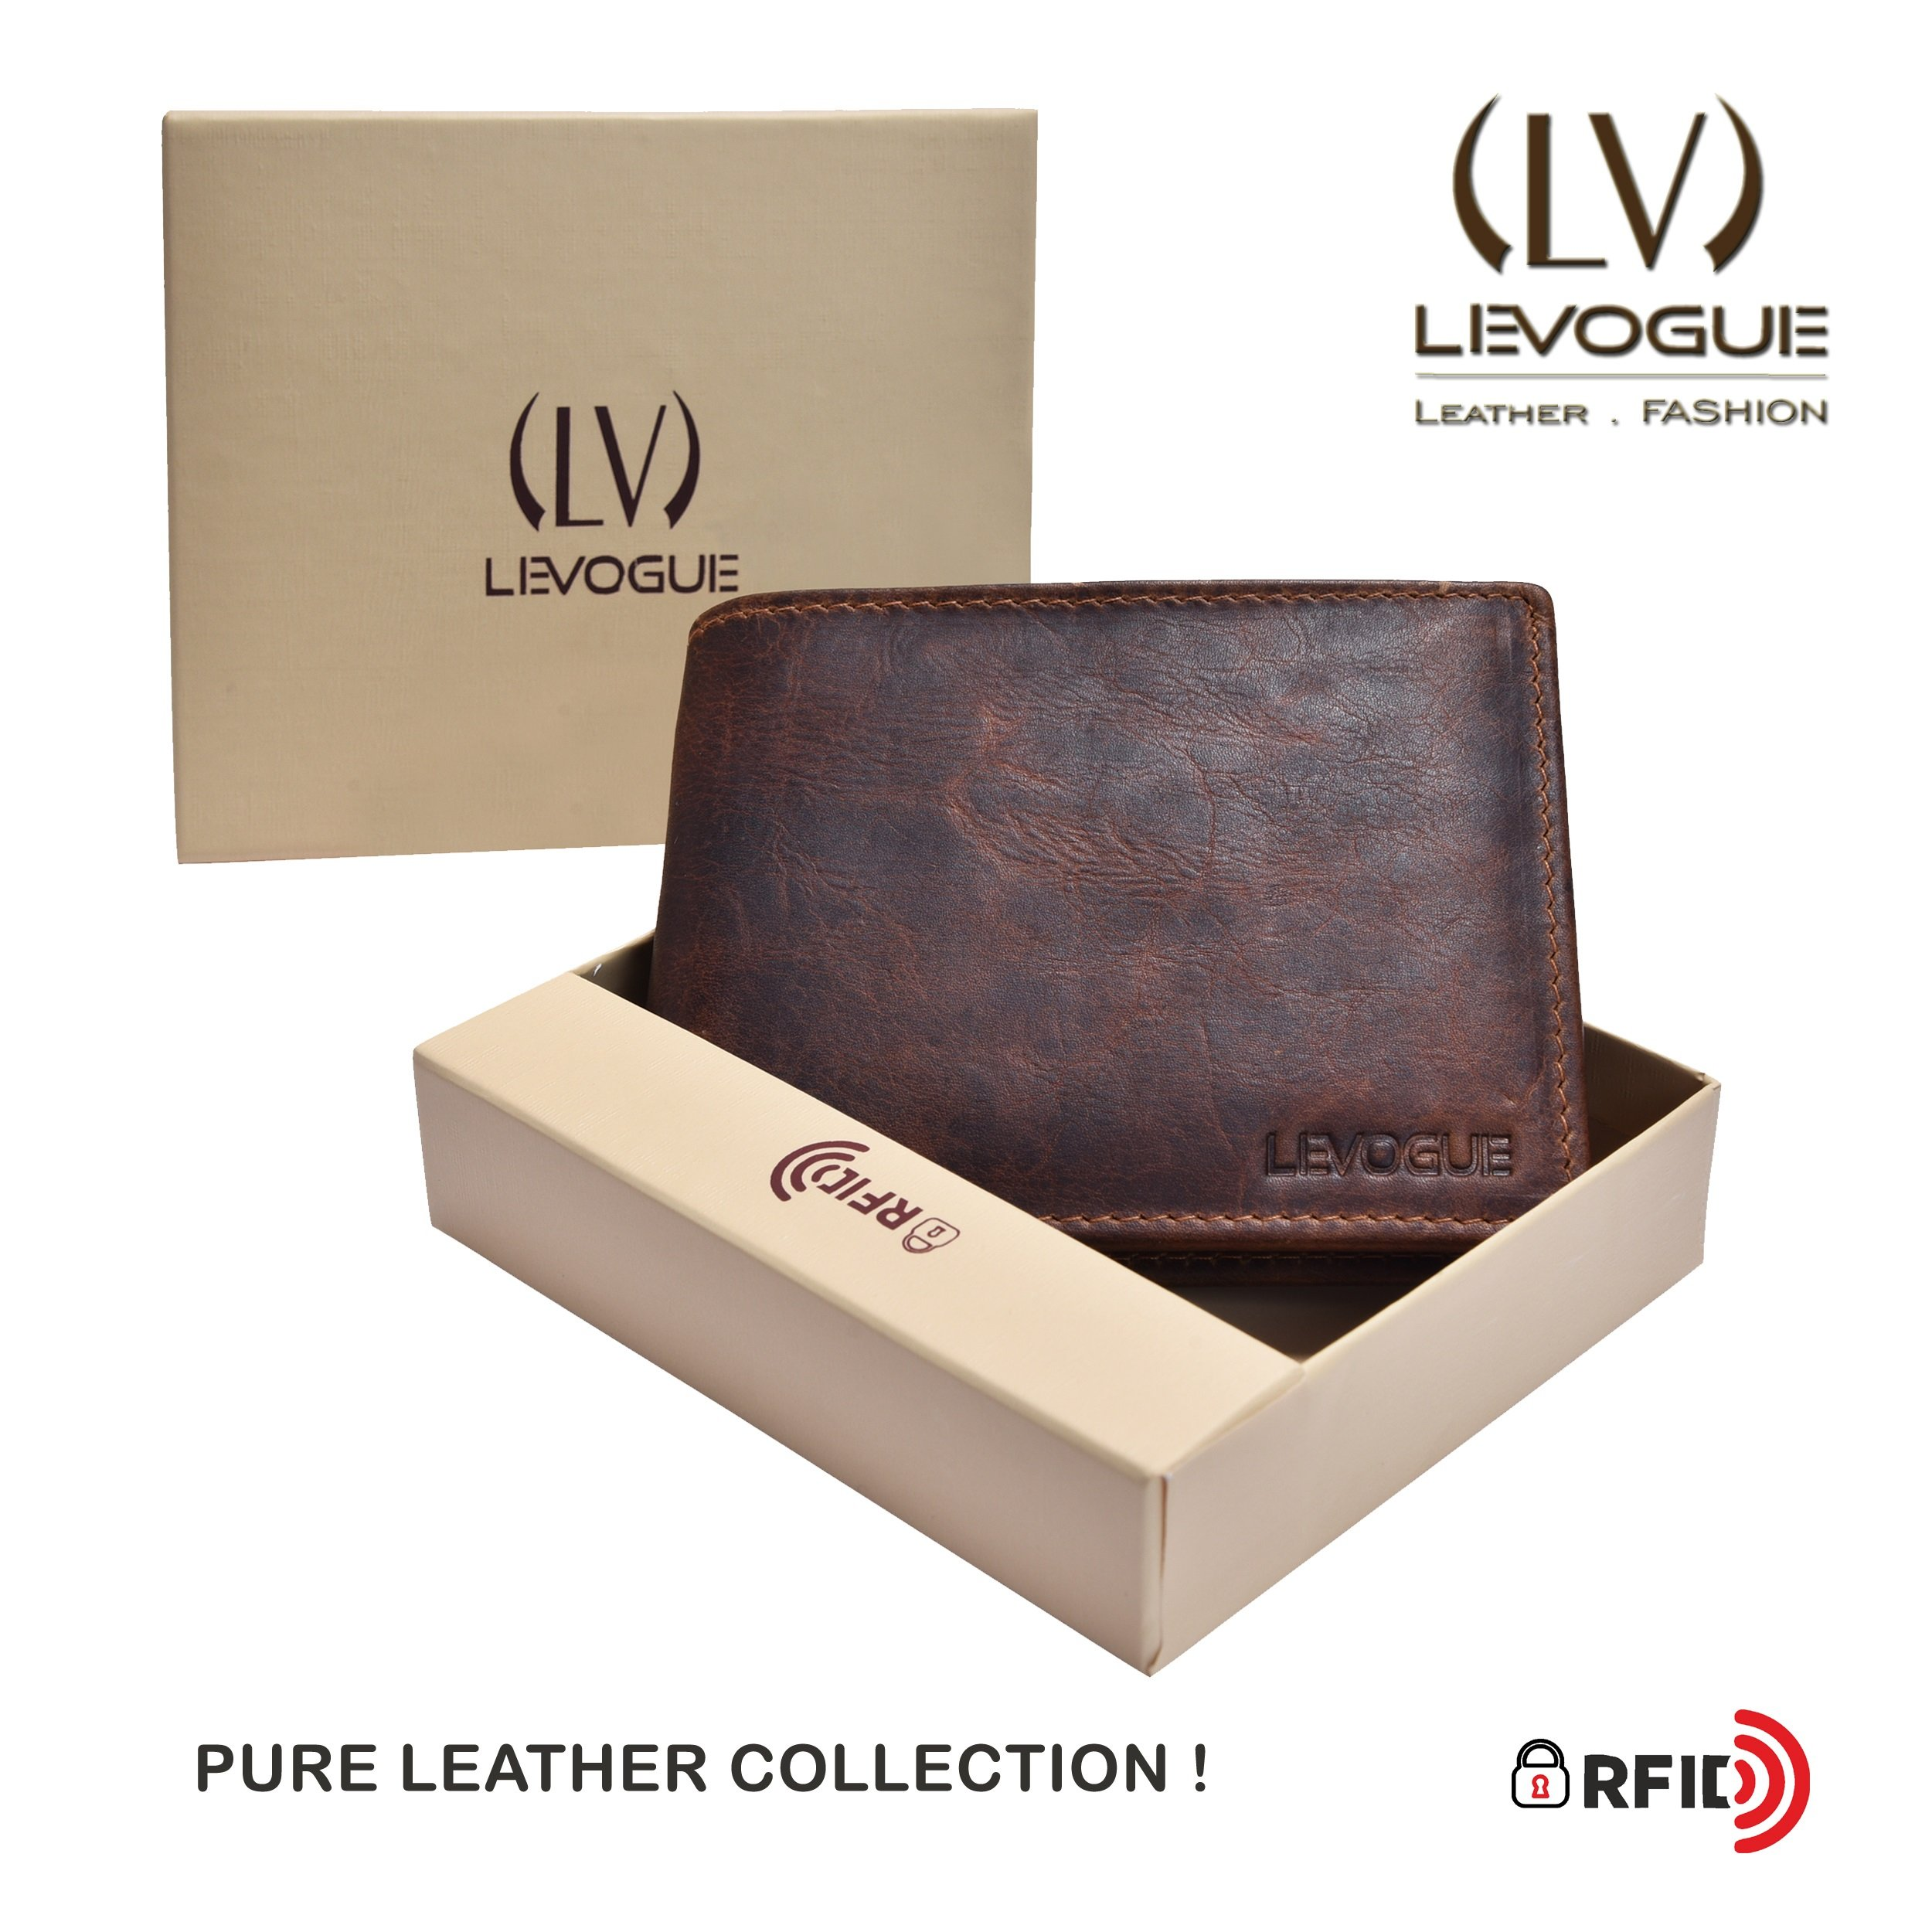 Genuine COW VINTAGE Leather RFID Blocking Handmade Bifold Wallet for Men 4 Credit card+1 ID Window+2 Note Compartment Minimalist Front Pocket Wallet- 100% Full Grain Cow Leather by LEVOGUE by LEVOGUE (Image #7)